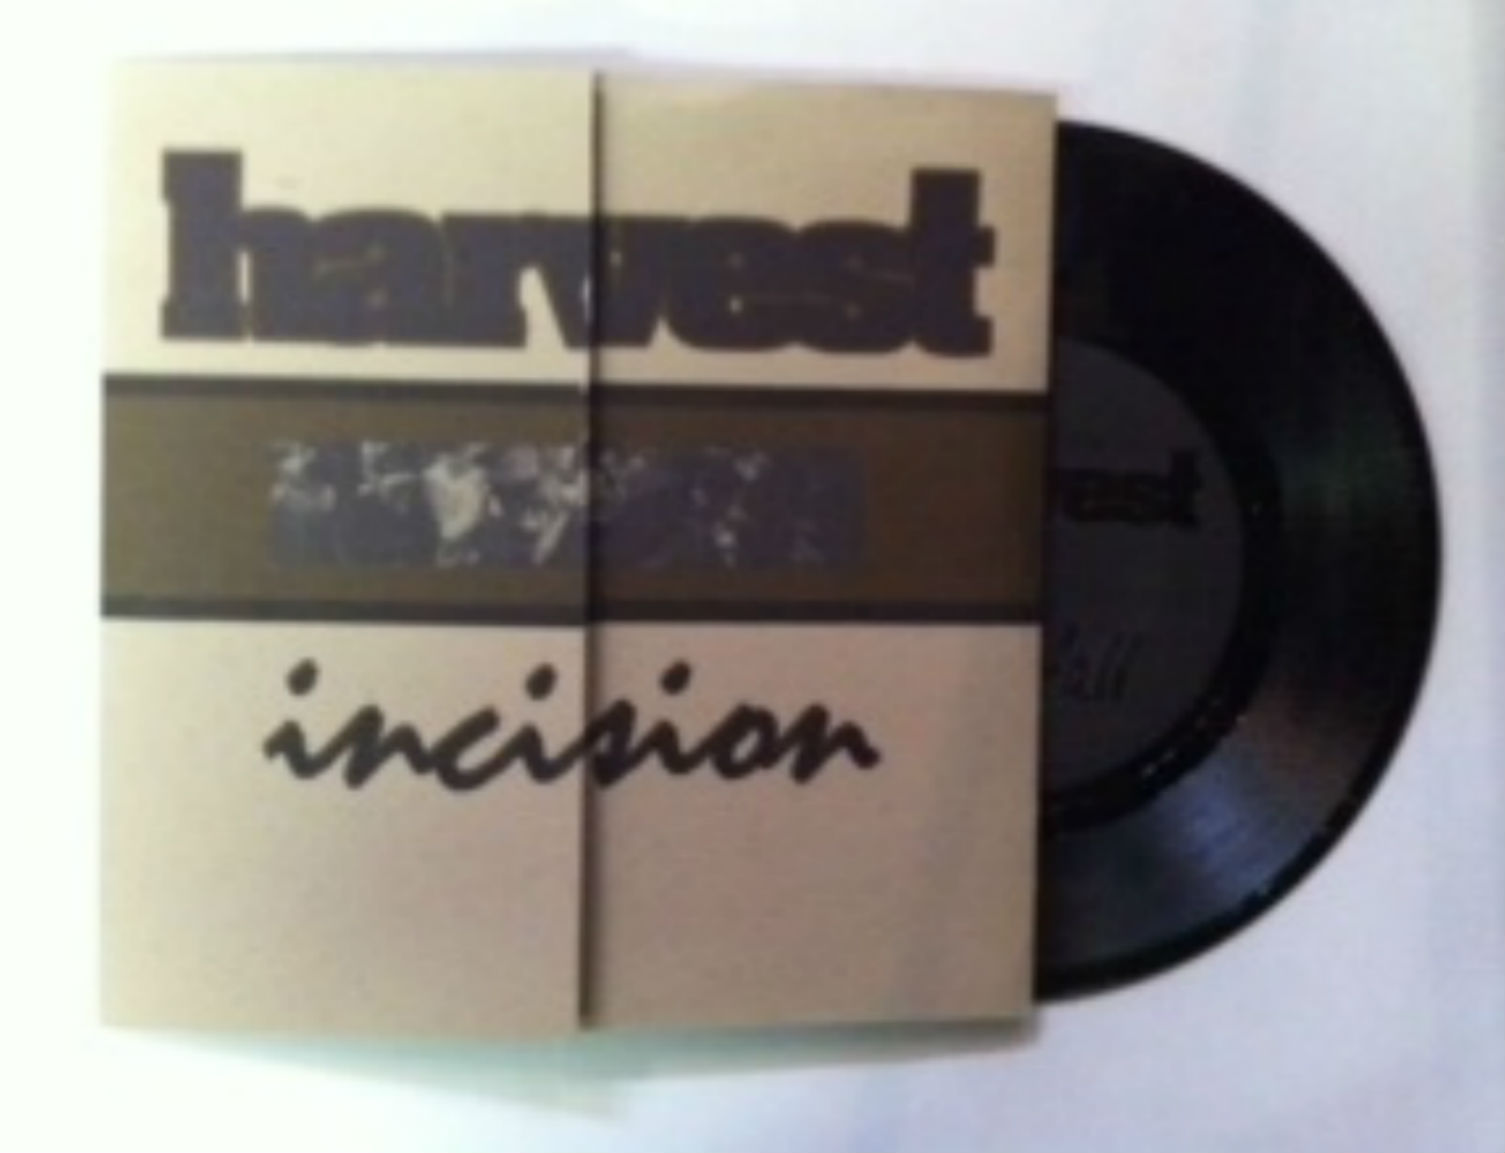 Harvest / Incision